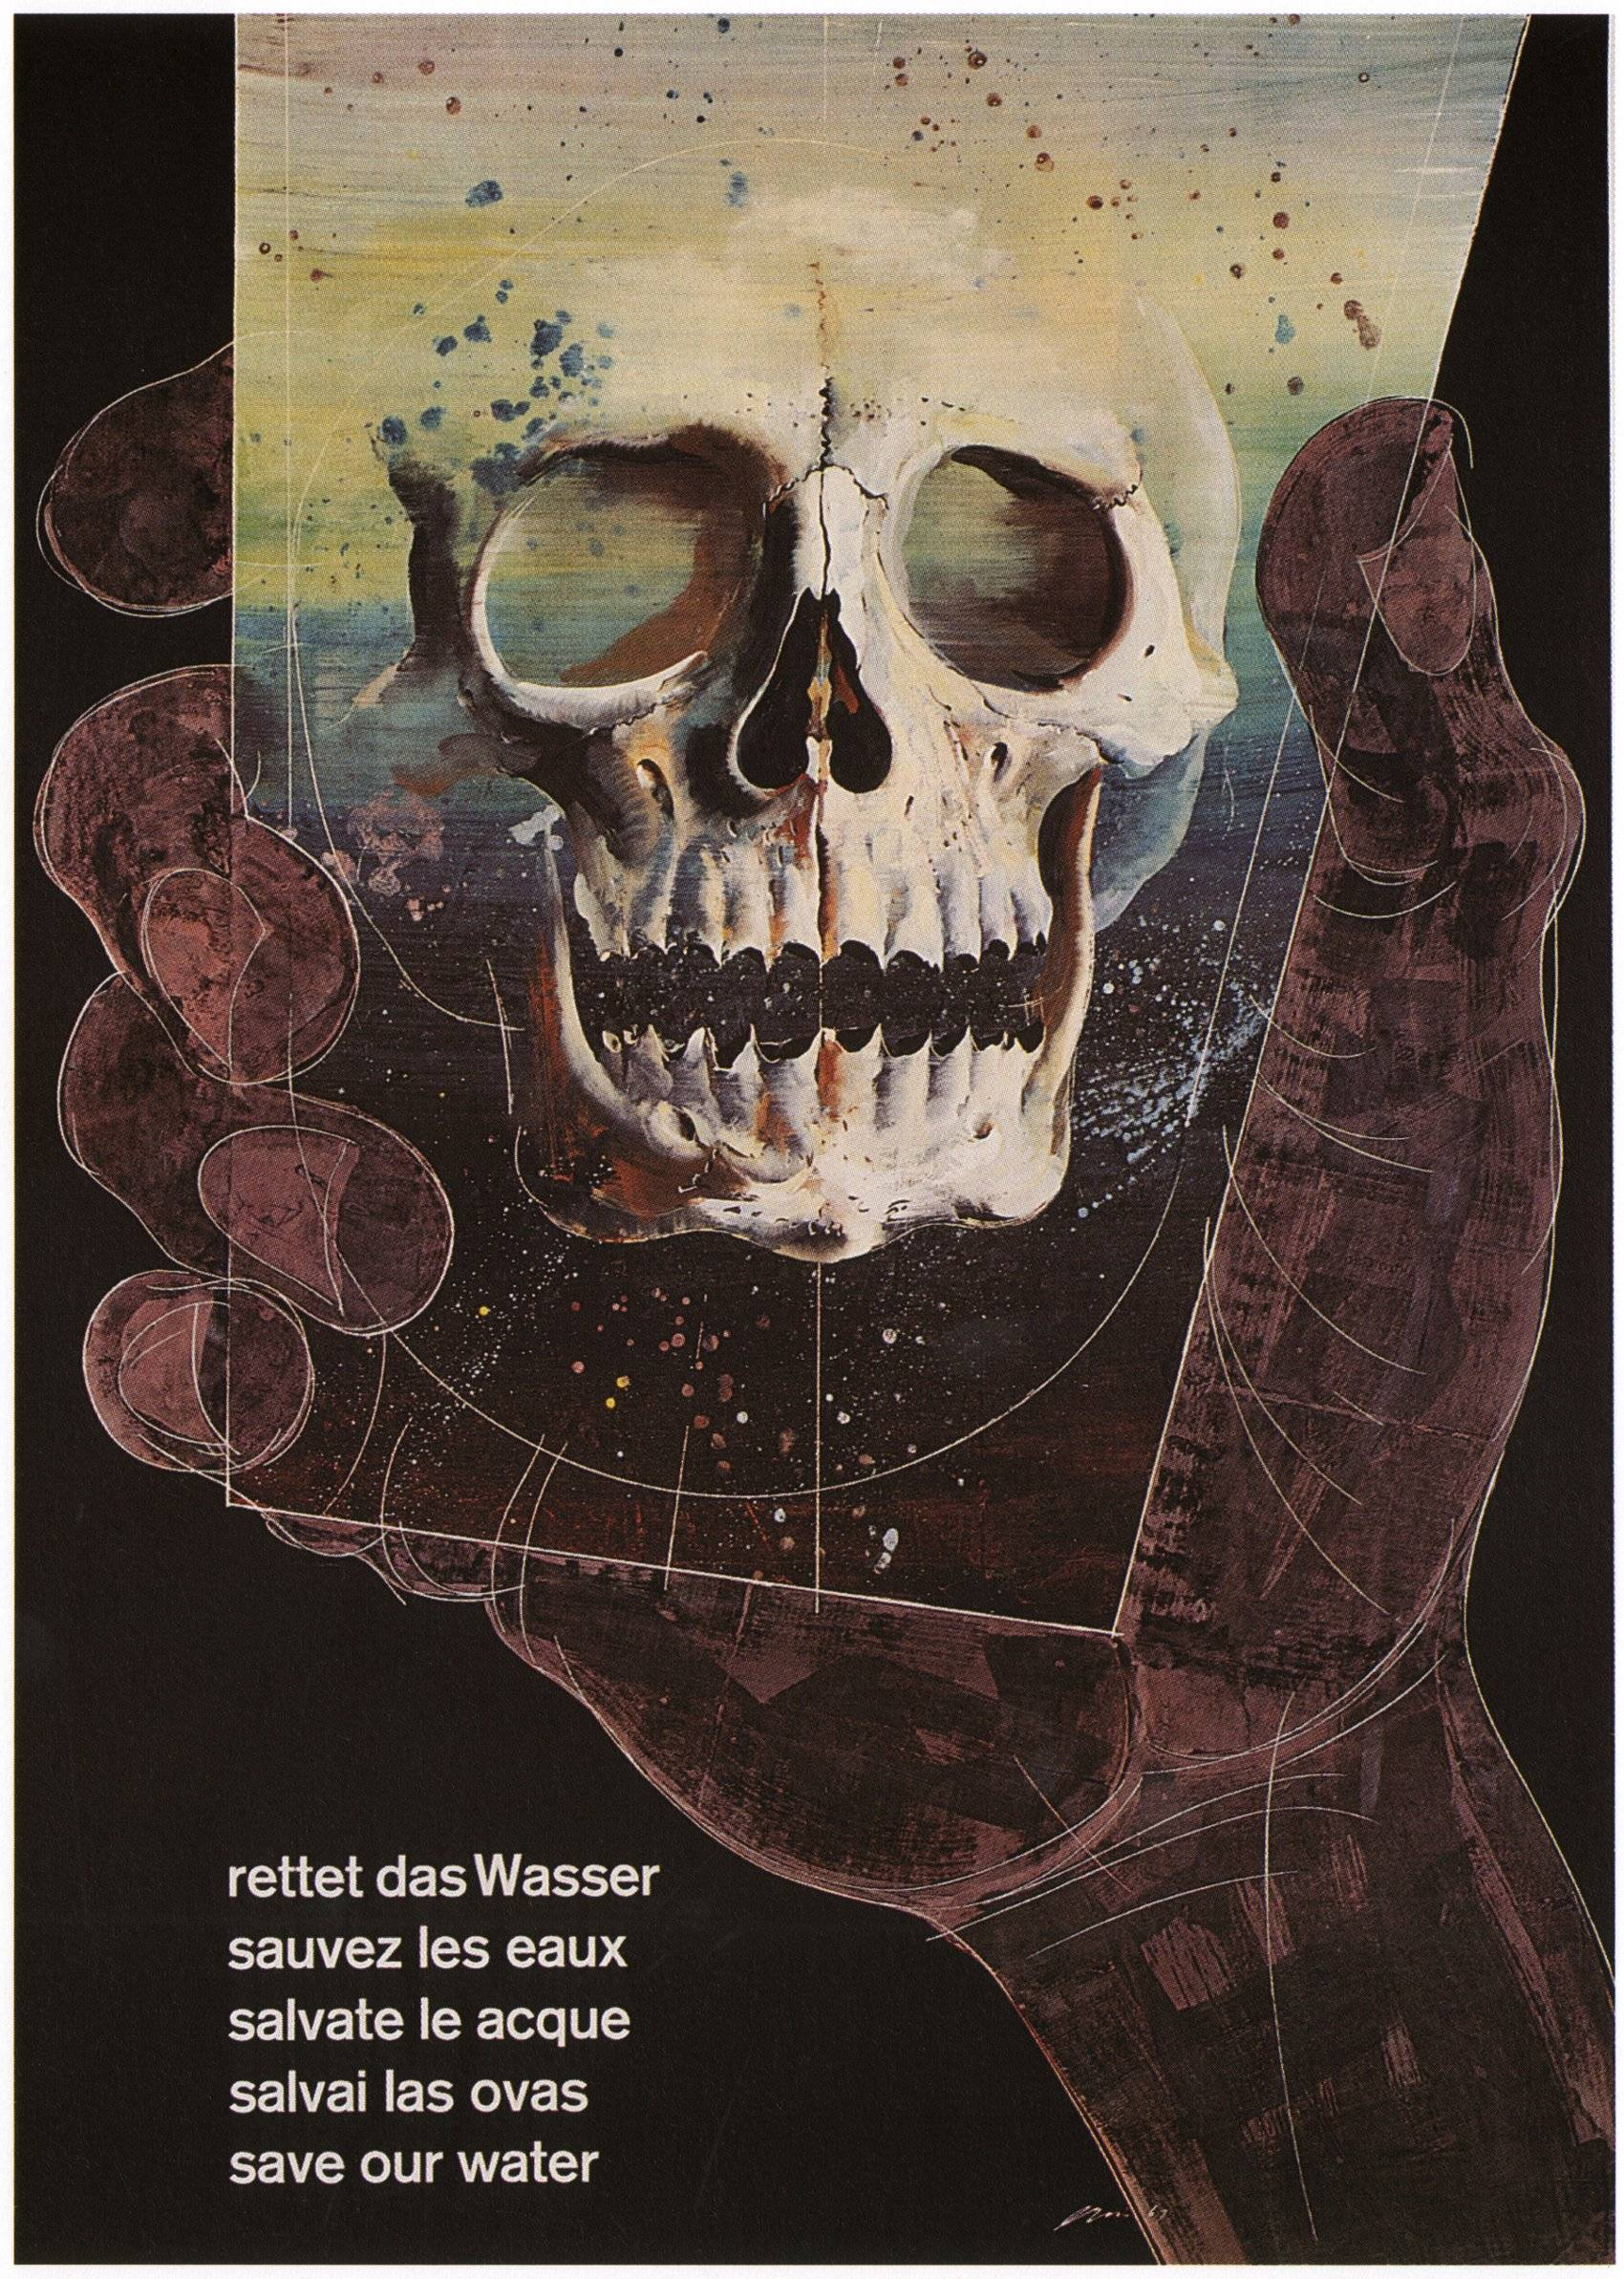 illustrational poster of a hand holding up the image of a skull